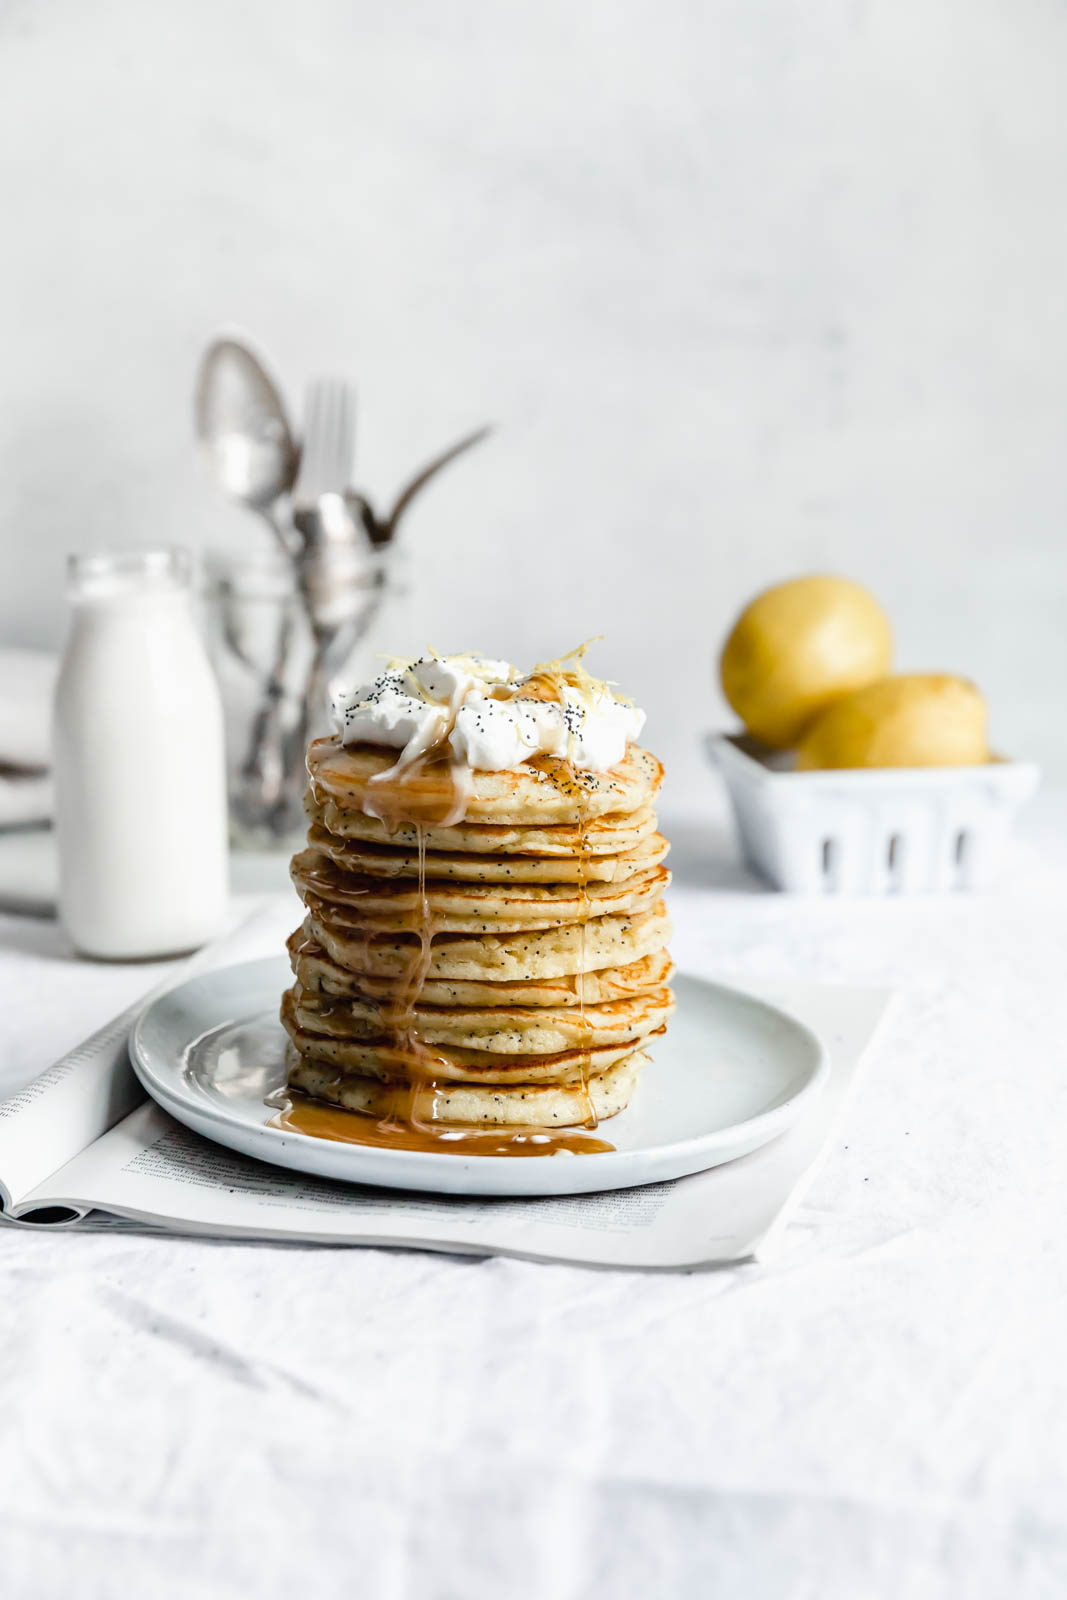 Light and fluffy Gluten Free Lemon Poppy Seed Pancakes made with almond flour and lemon zest. But proceed with caution: you might eat the whole batch!